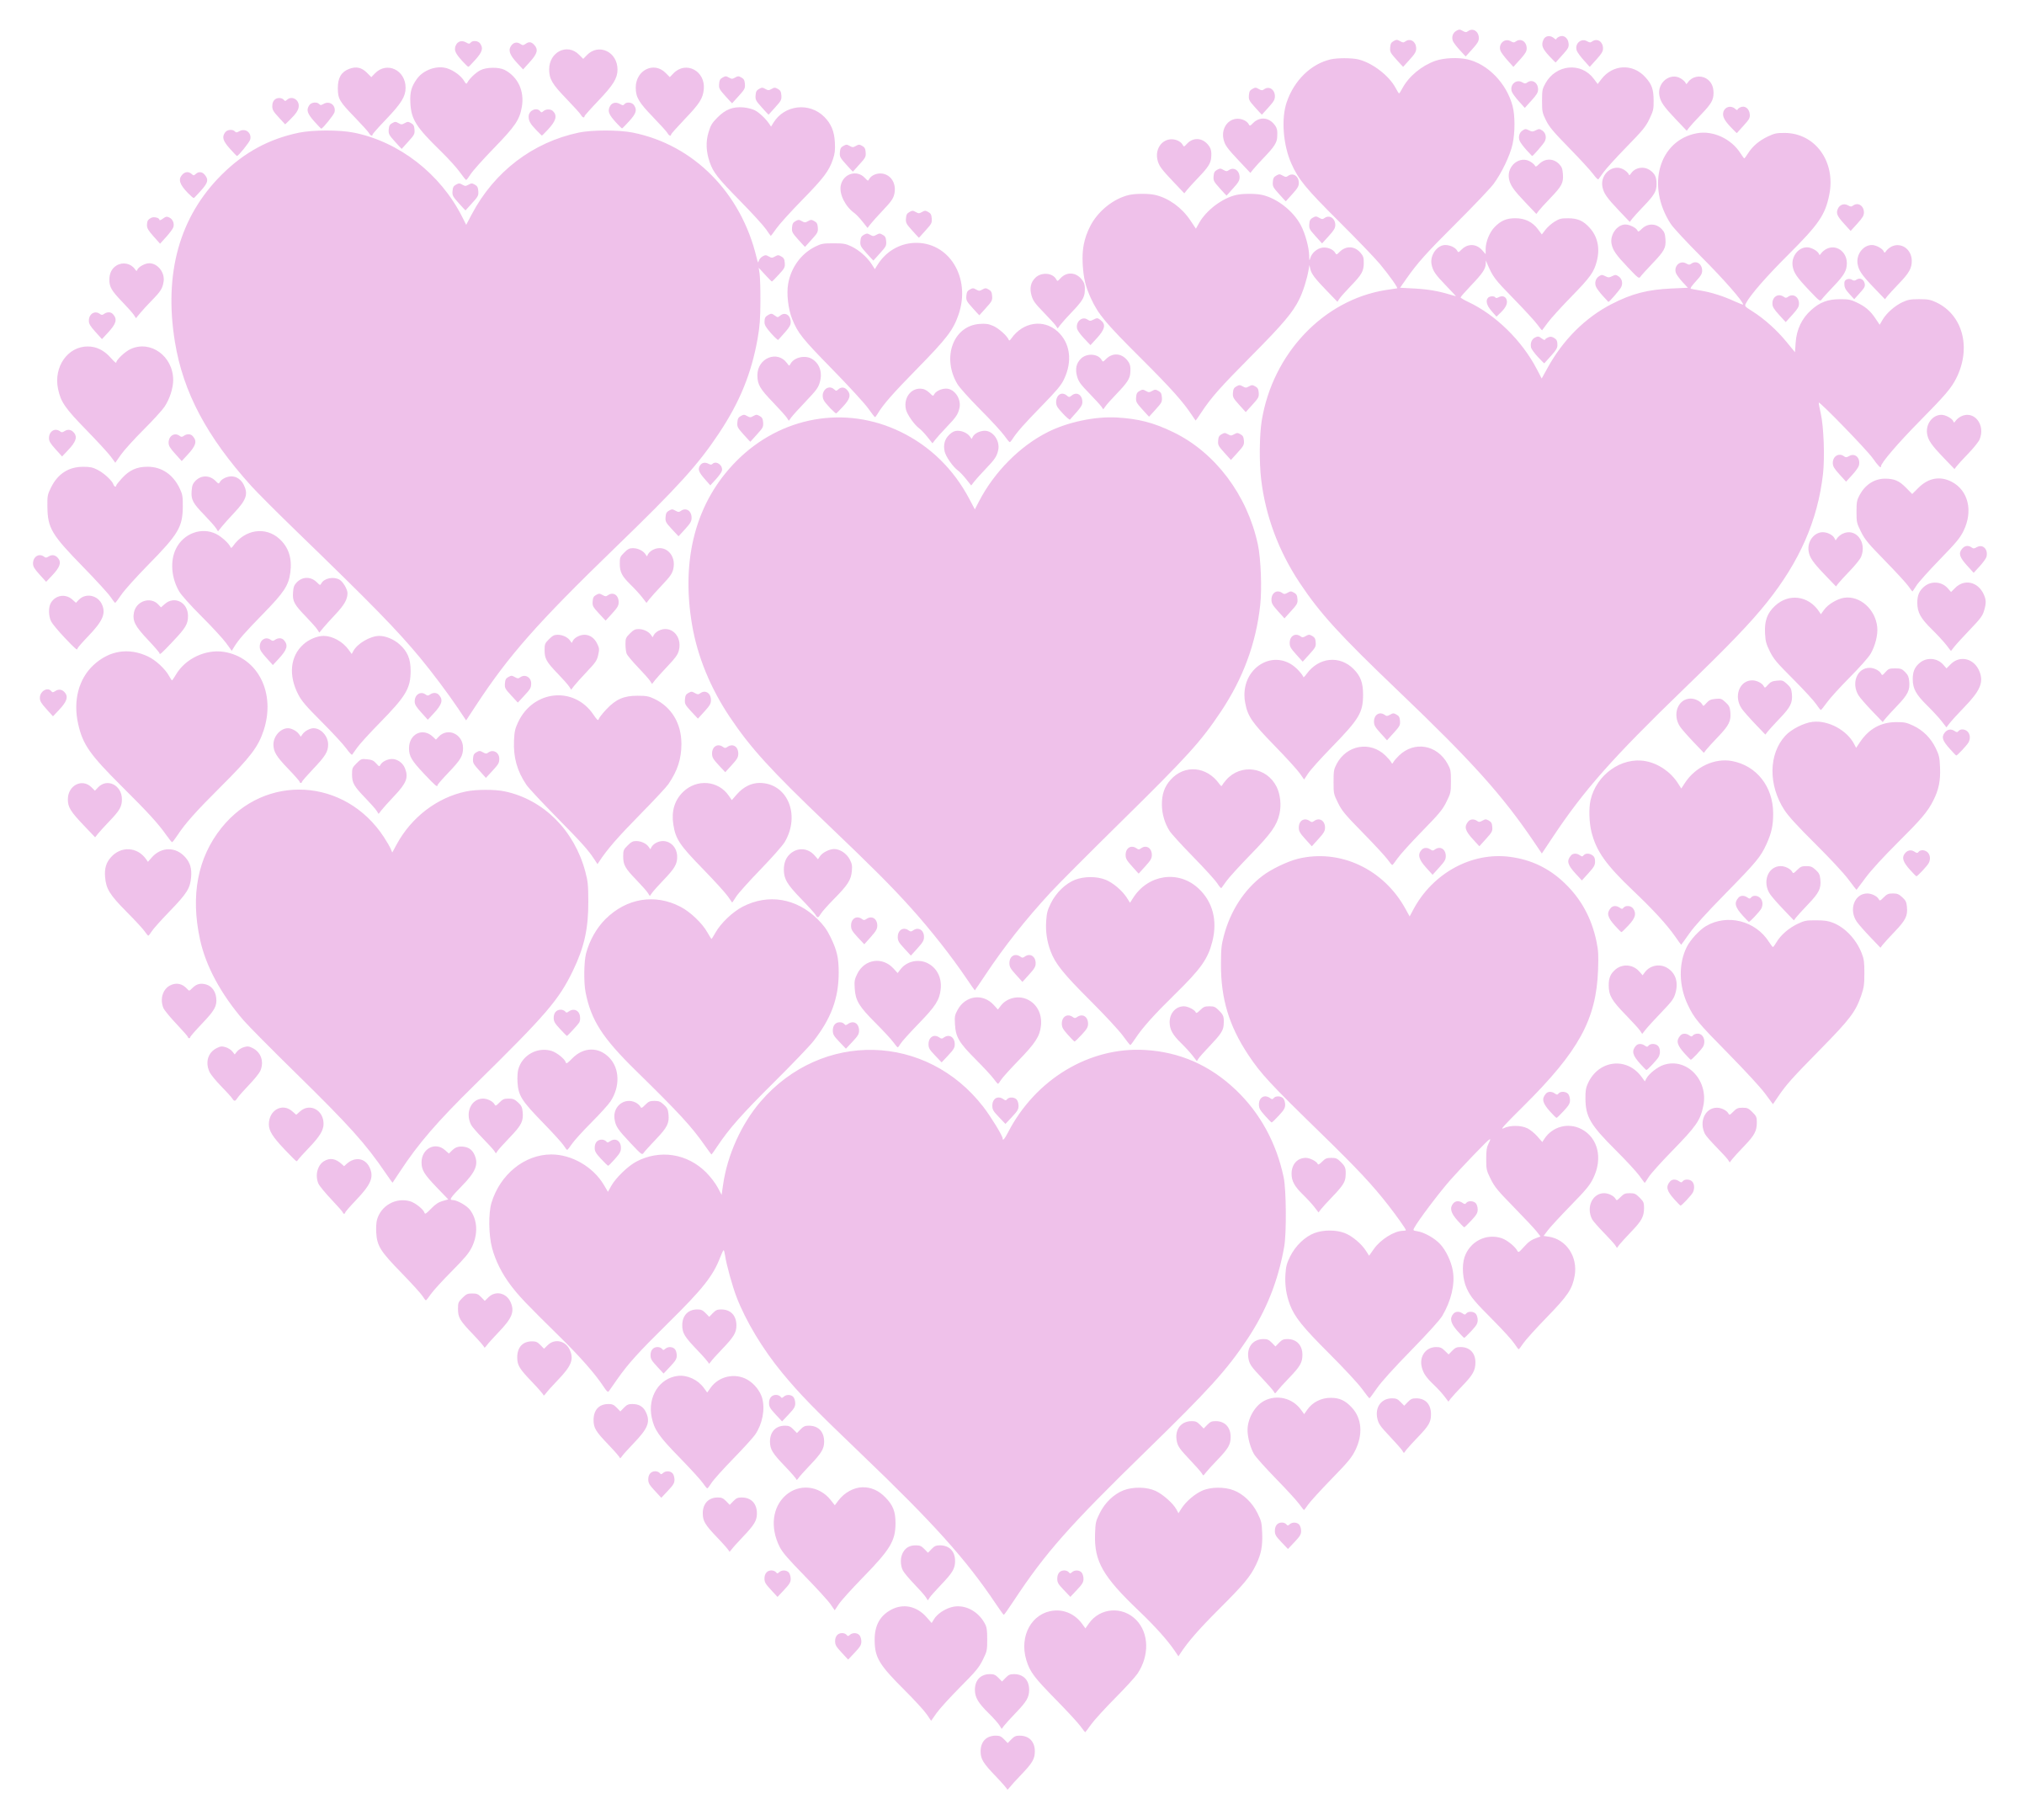 Pink clipart heart jpg freeuse Clipart - Hearts In Heart - Pink jpg freeuse